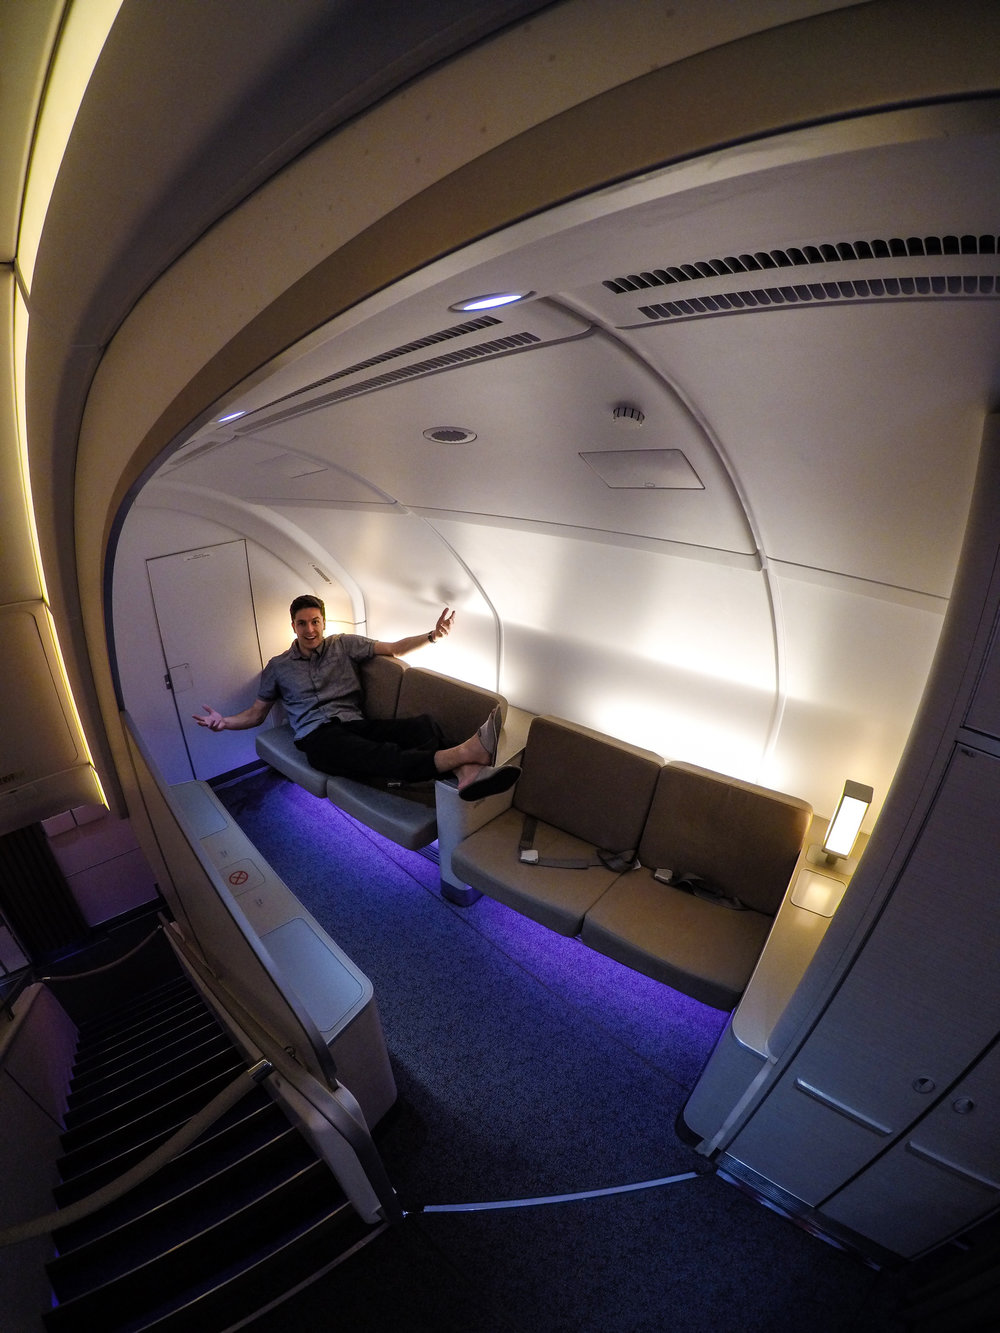 This particular flight had a lounge on board, pretty insane!